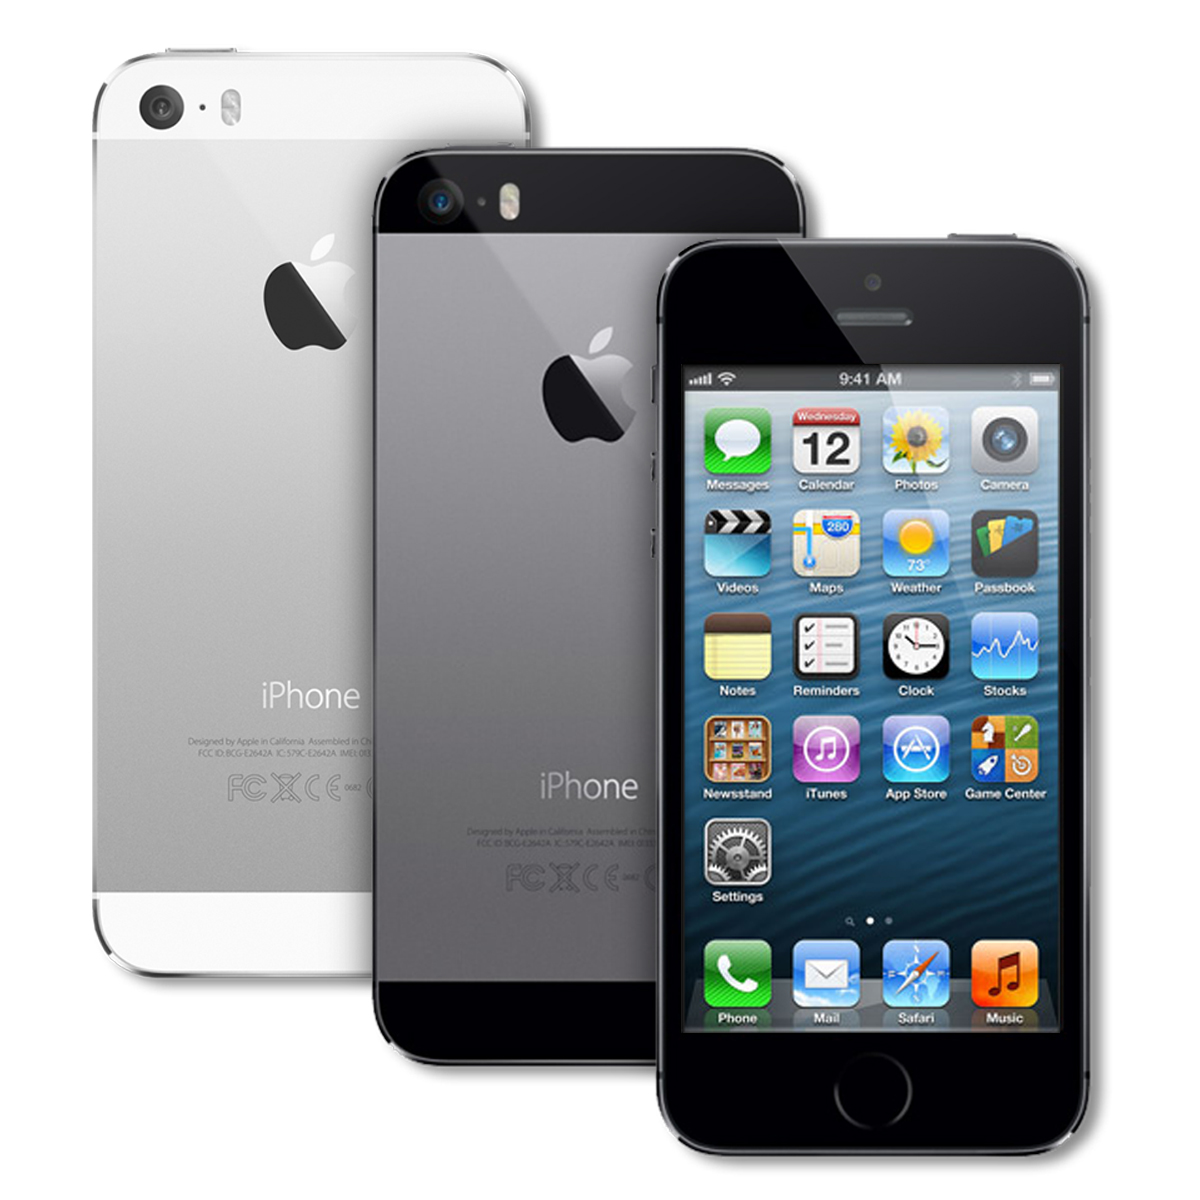 iphone 5s refurbished apple iphone 5s 16gb certified refurbished factory 11238